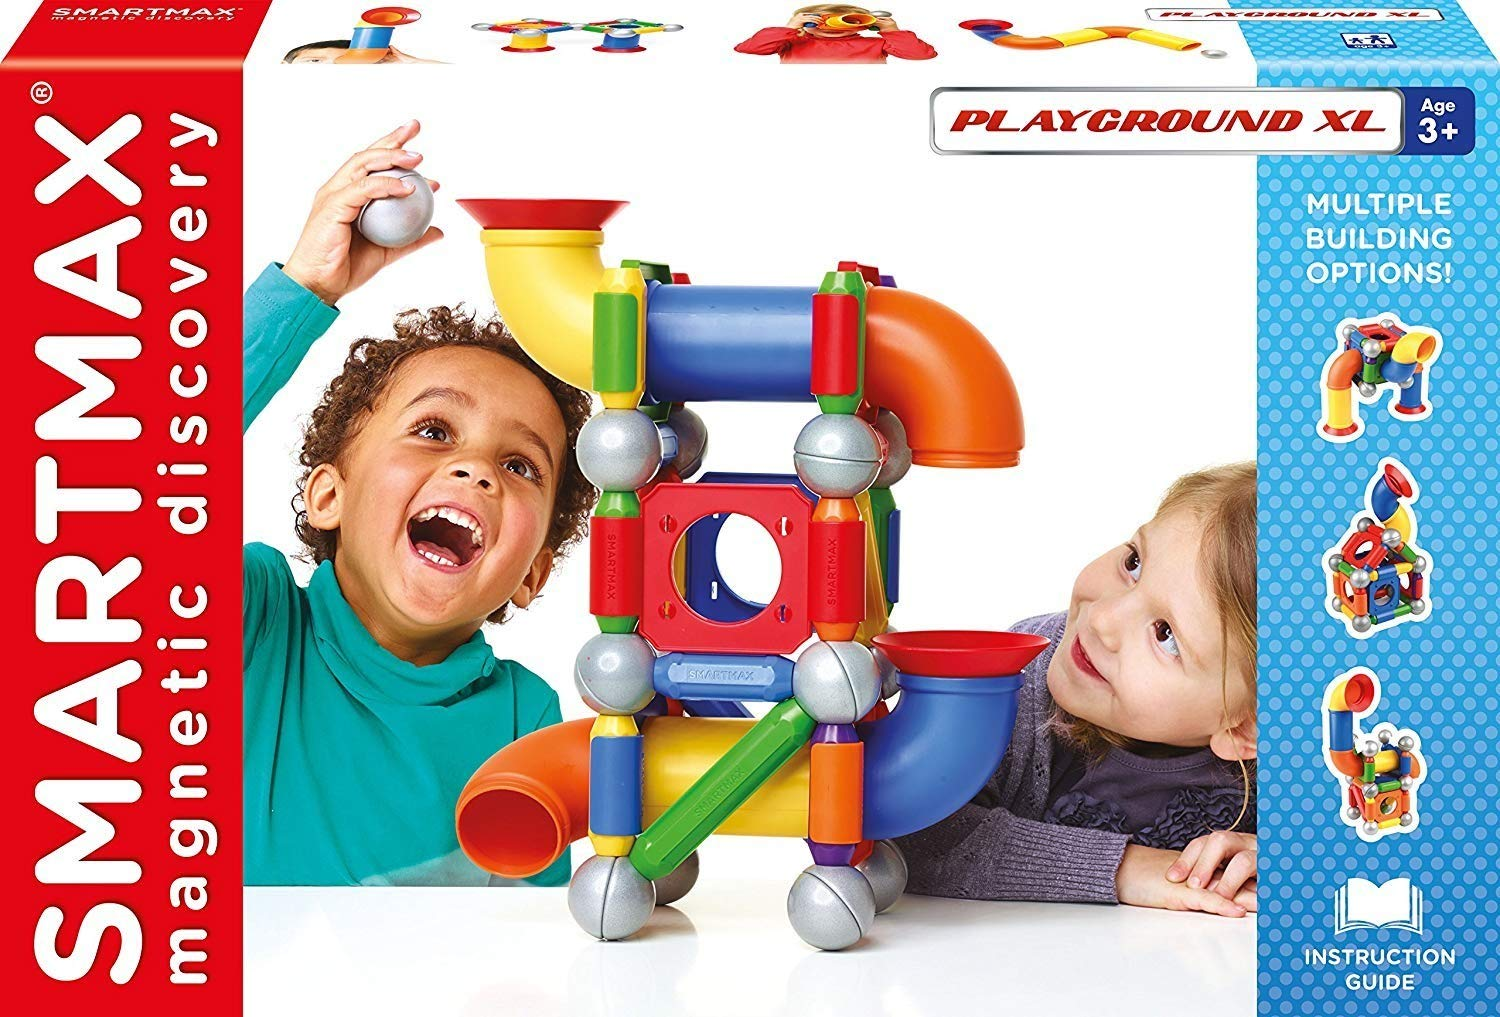 SmartMax ''Playground XL'', Magnetic Discovery, lets small builders show off large inventions